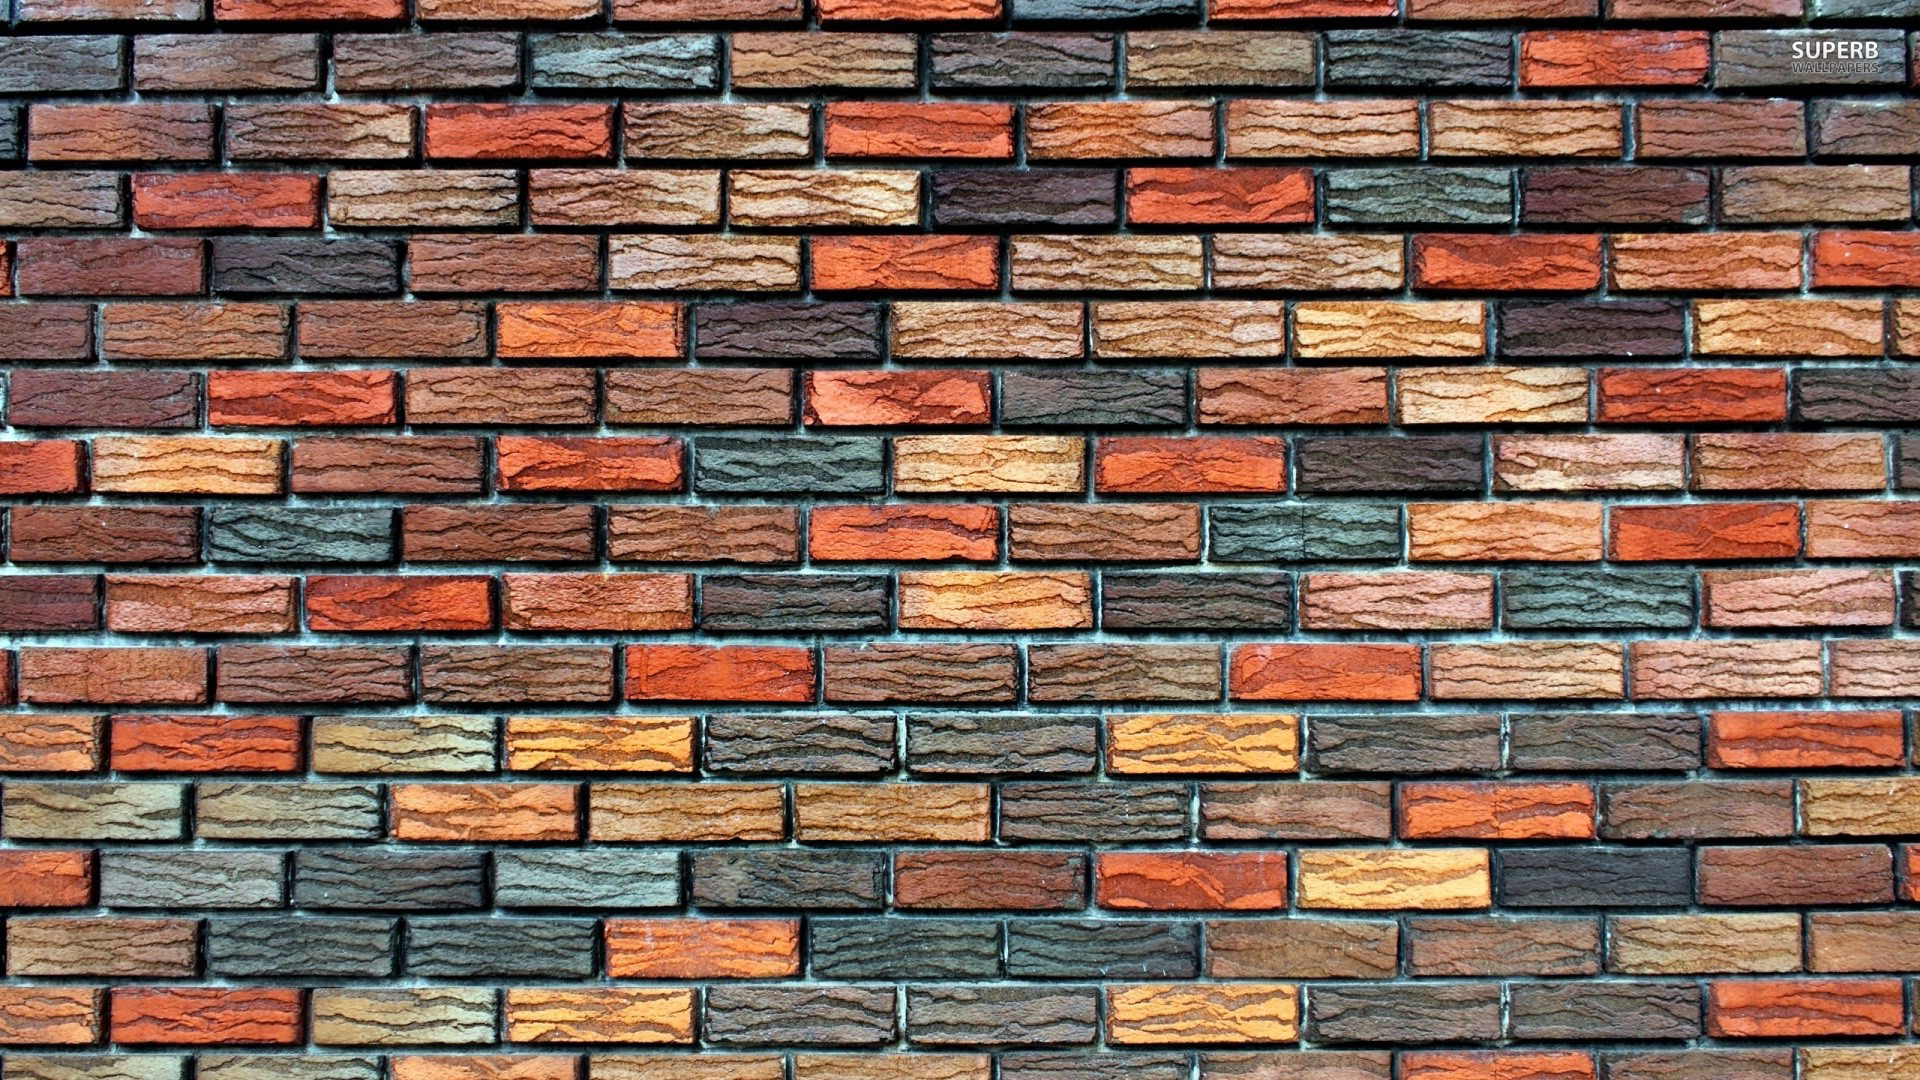 40 hd brick wallpapers backgrounds for free download for Cool brick wall designs